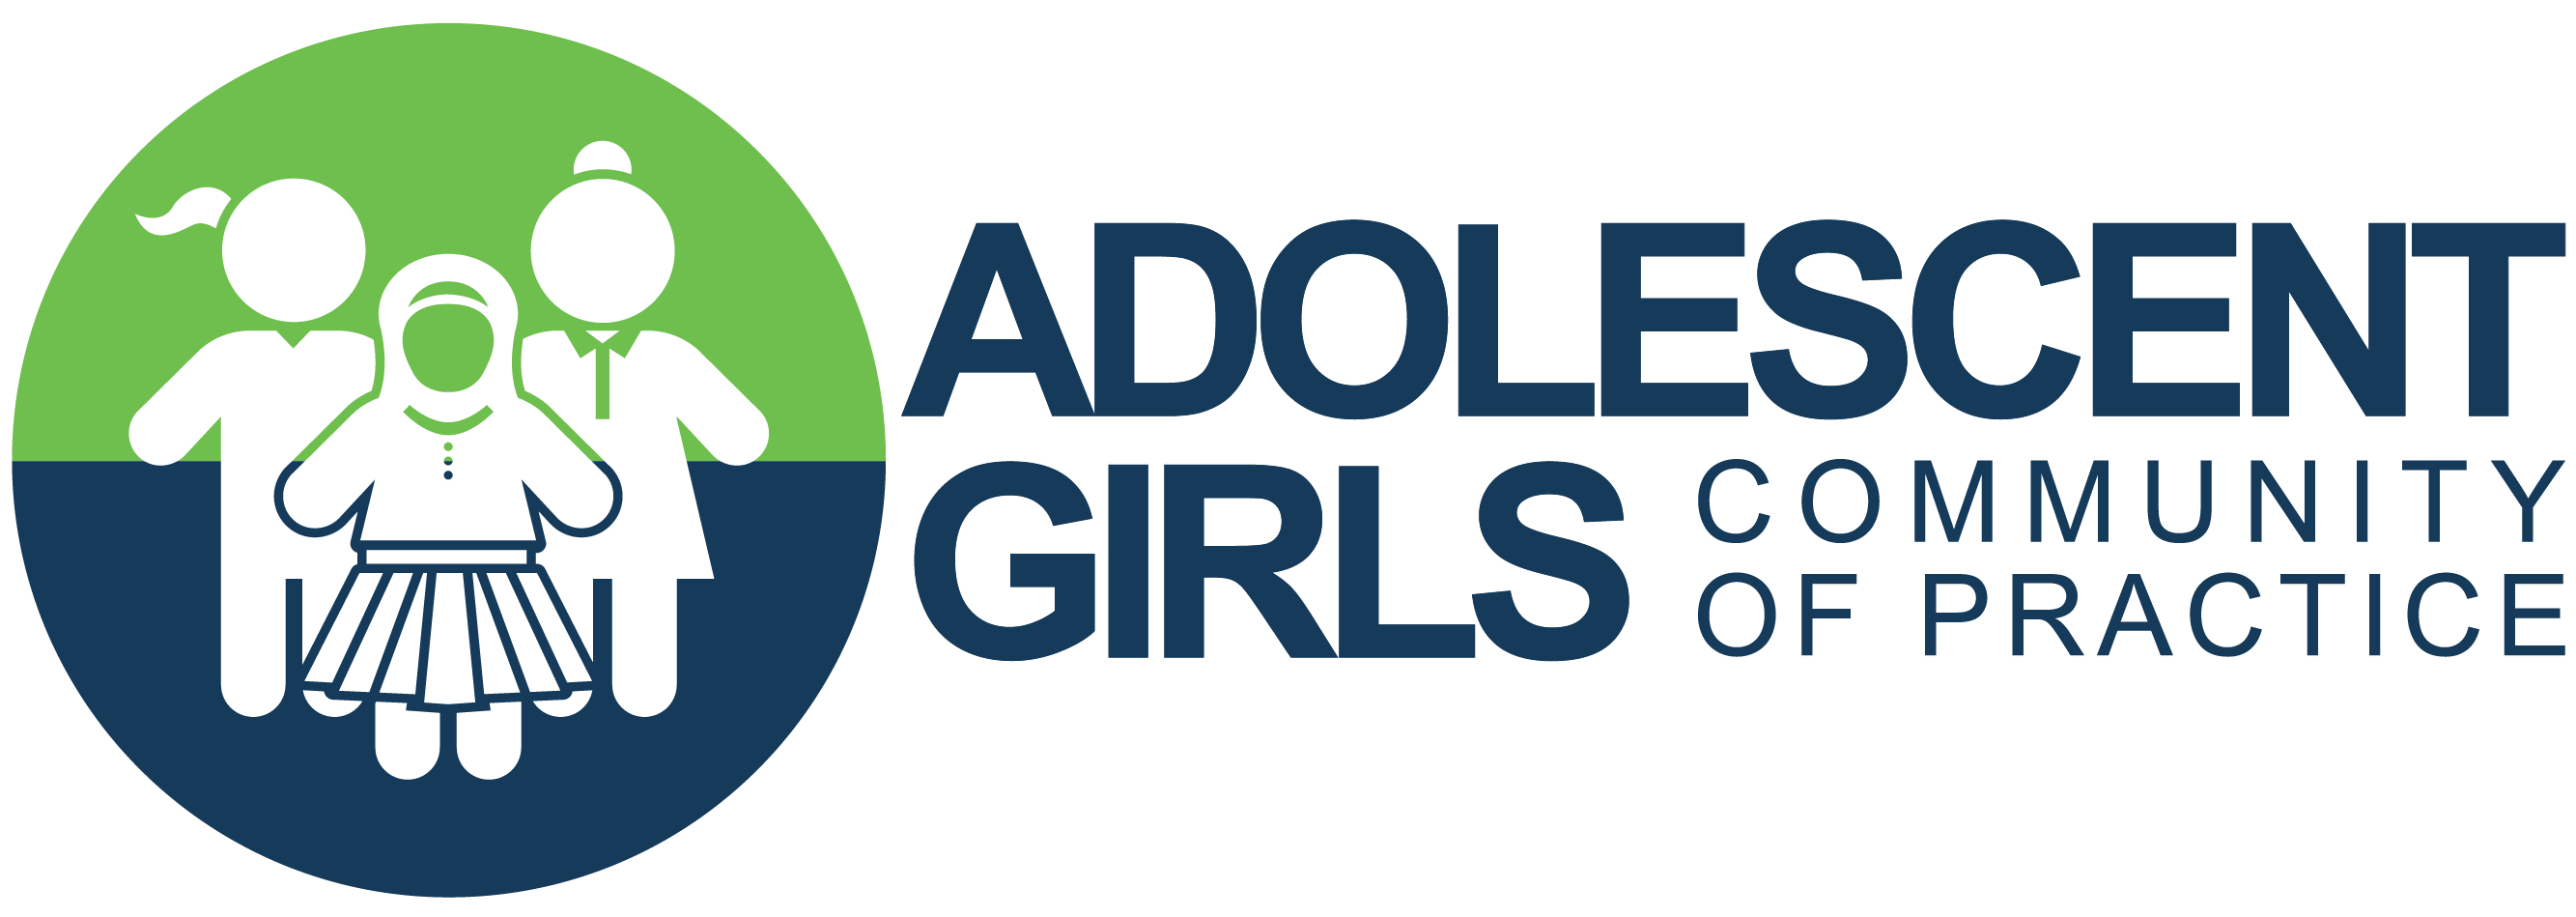 Adolescent Girls Community of Practice